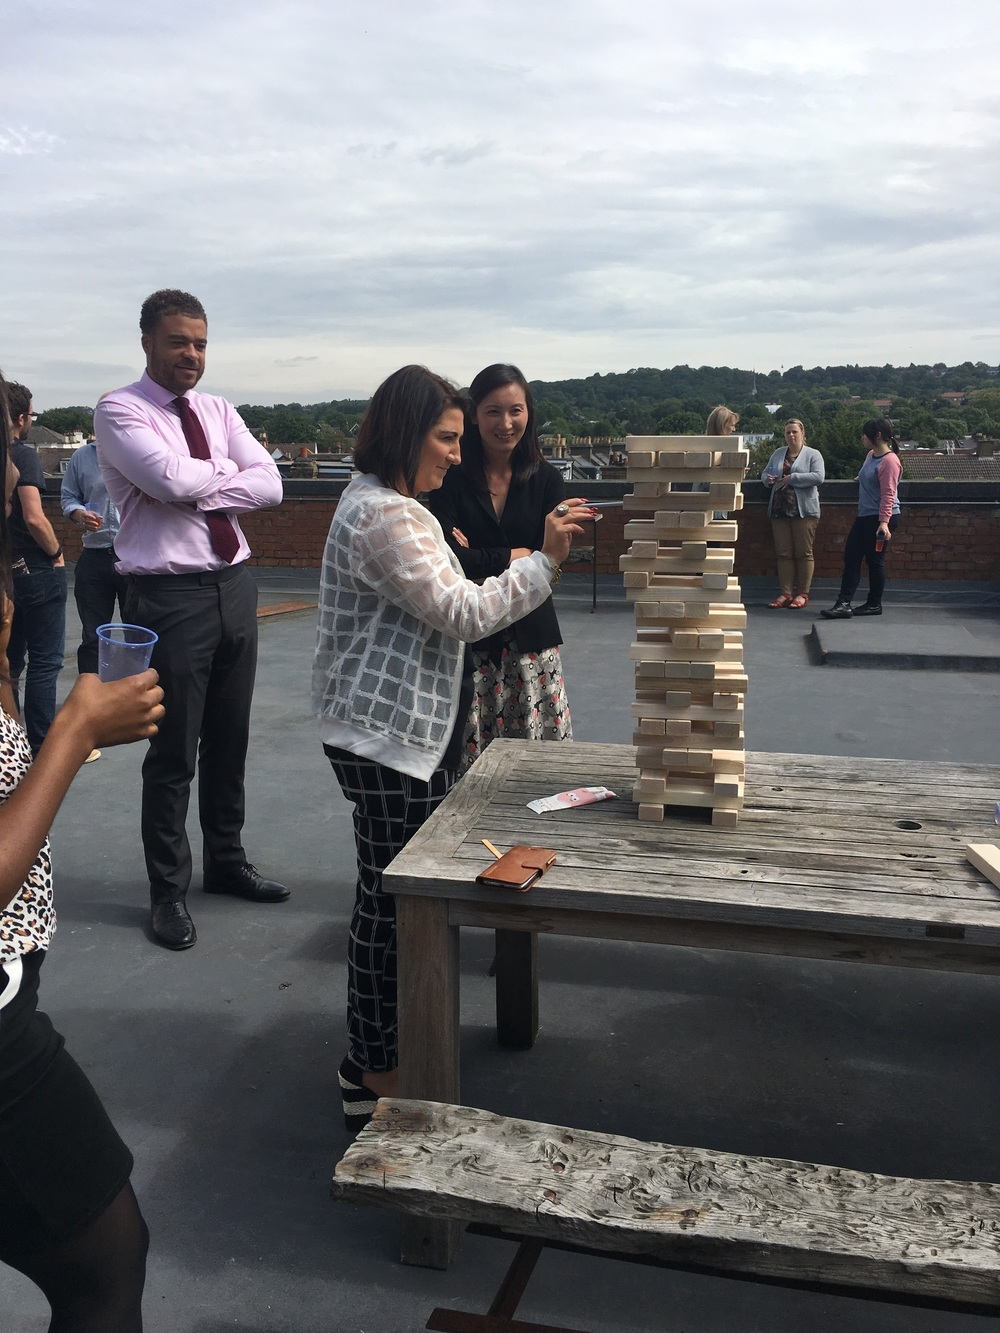 My work's summer party and the giant Jenga